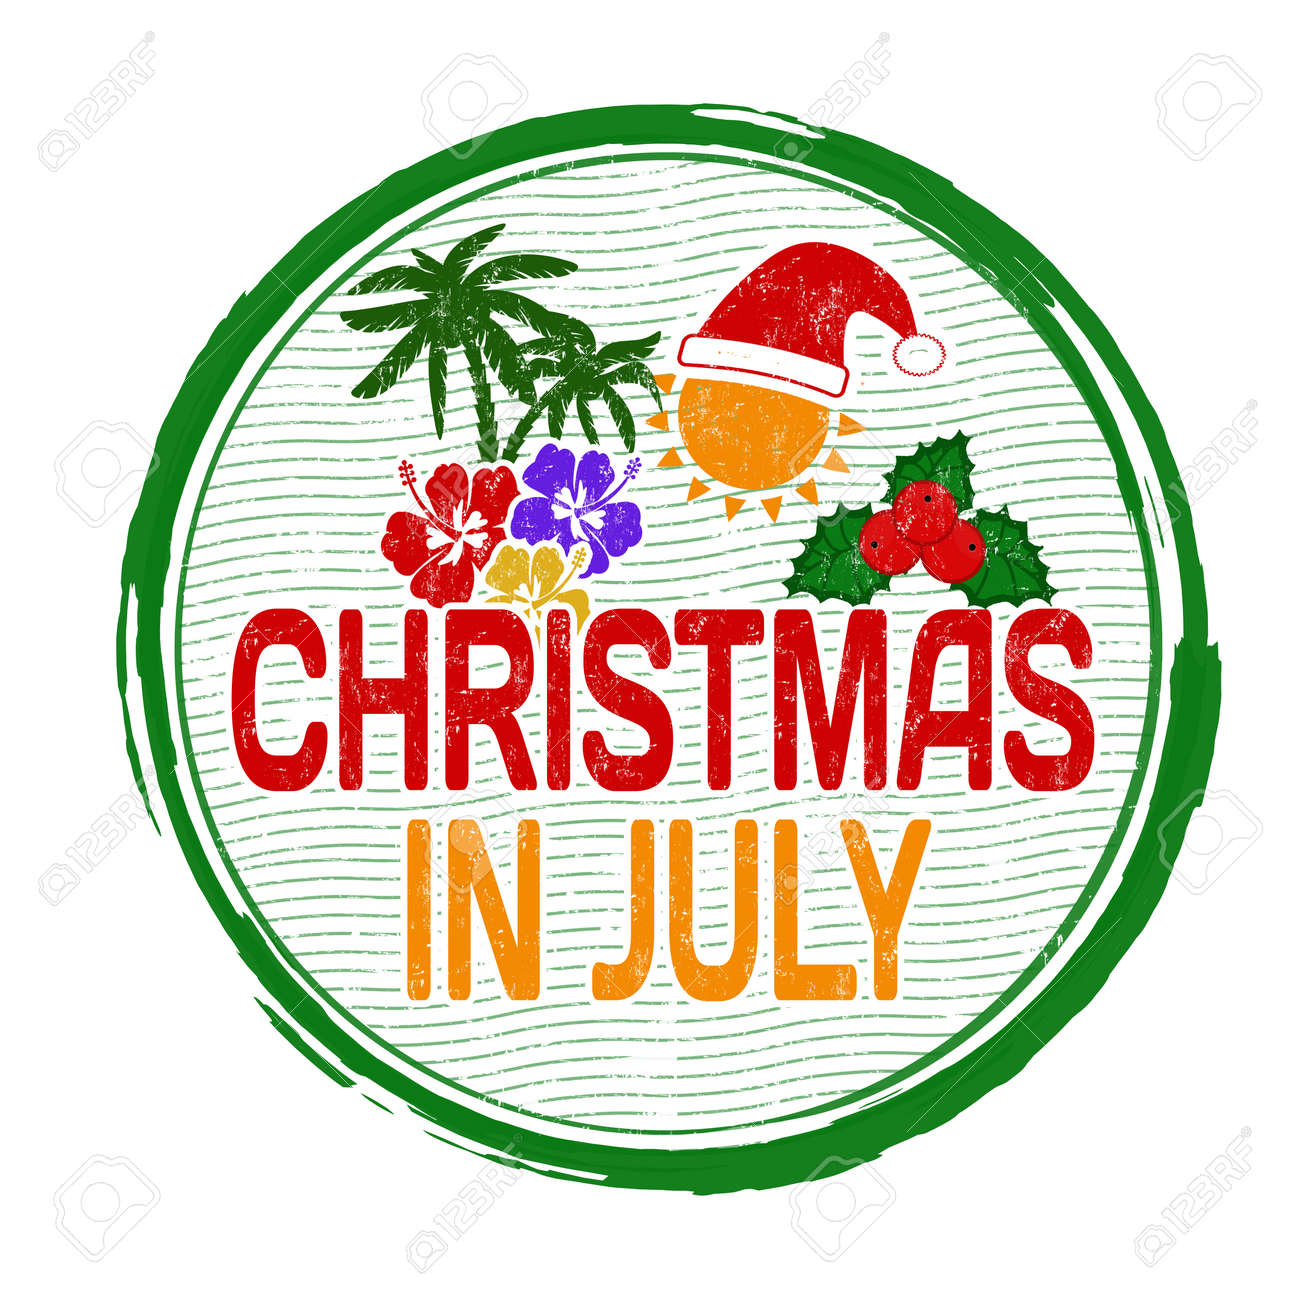 Christmas In July Clipart.Christmas In July Grunge Rubber Stamp On White Vector Illustration